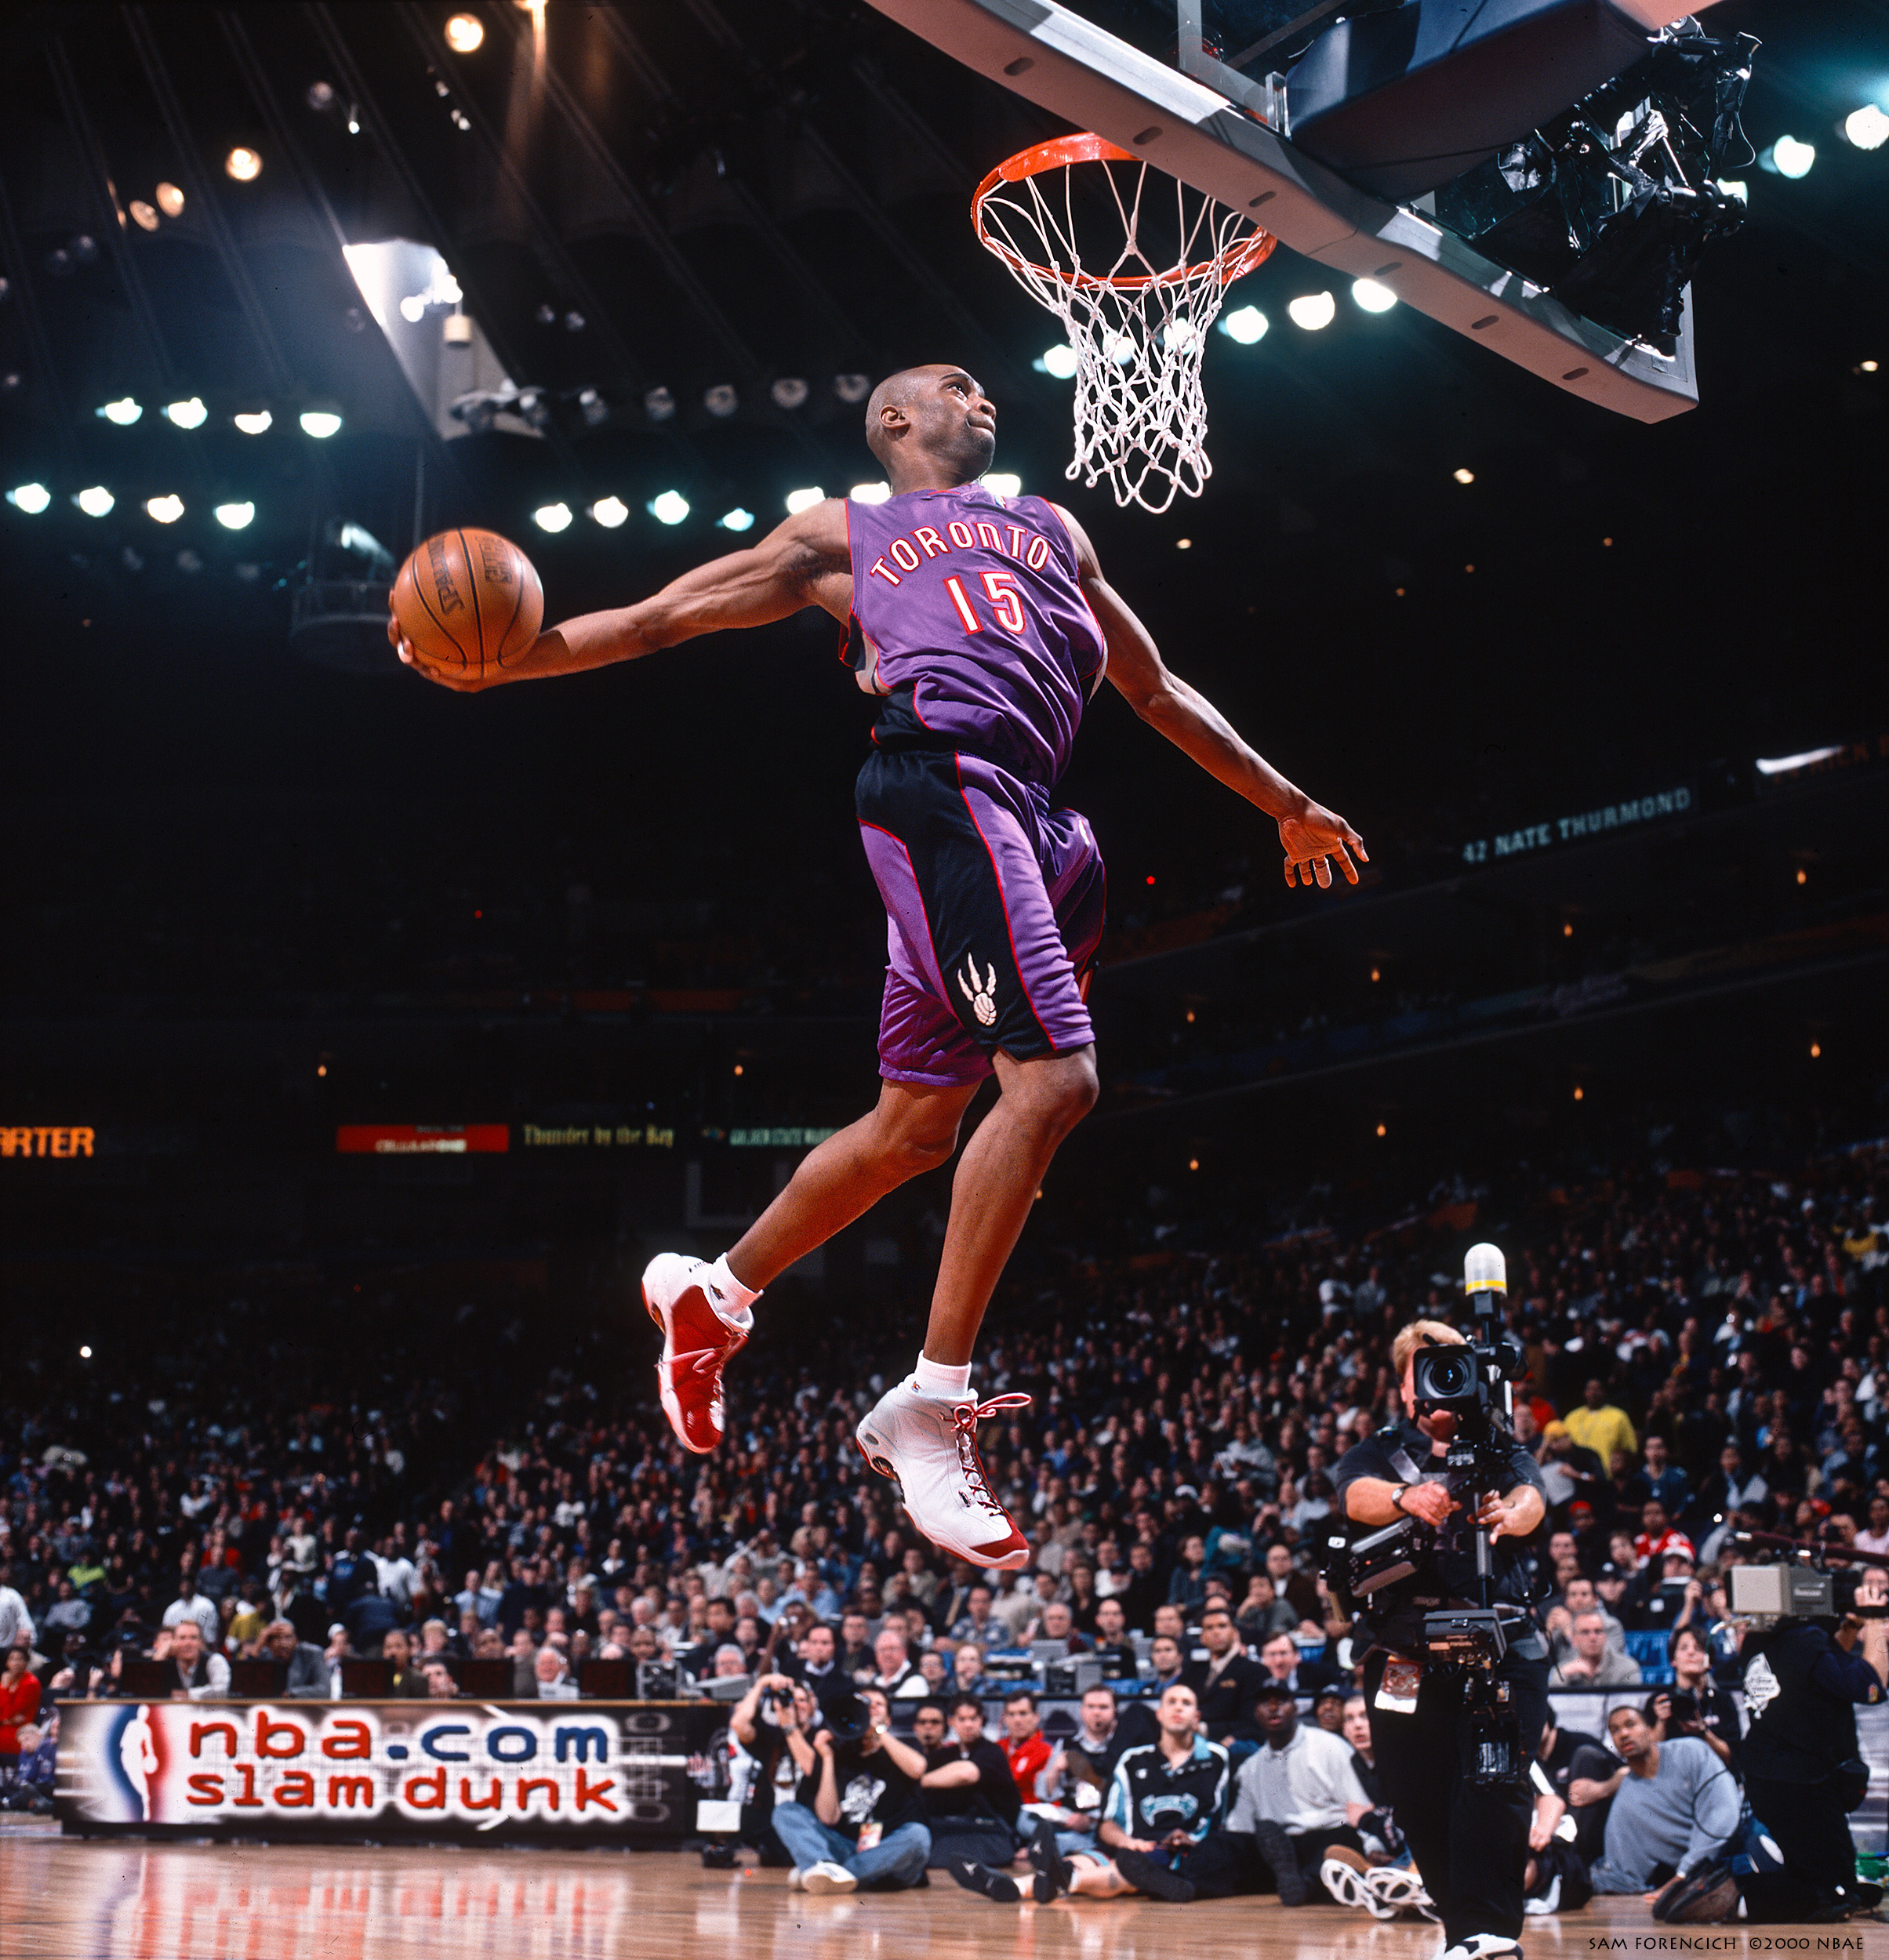 Oakland, CA - Vince Carter #15 of the Toronto Raptors goes for a dunk during the 2000 NBA All-Star Slam Dunk Contest at The Oakland Coliseum Arena on February 12, 2000. Manually focused Hasselblad, RDP 100 film, arena strobe lighting.  Sam Forencich ©2000 NBAE